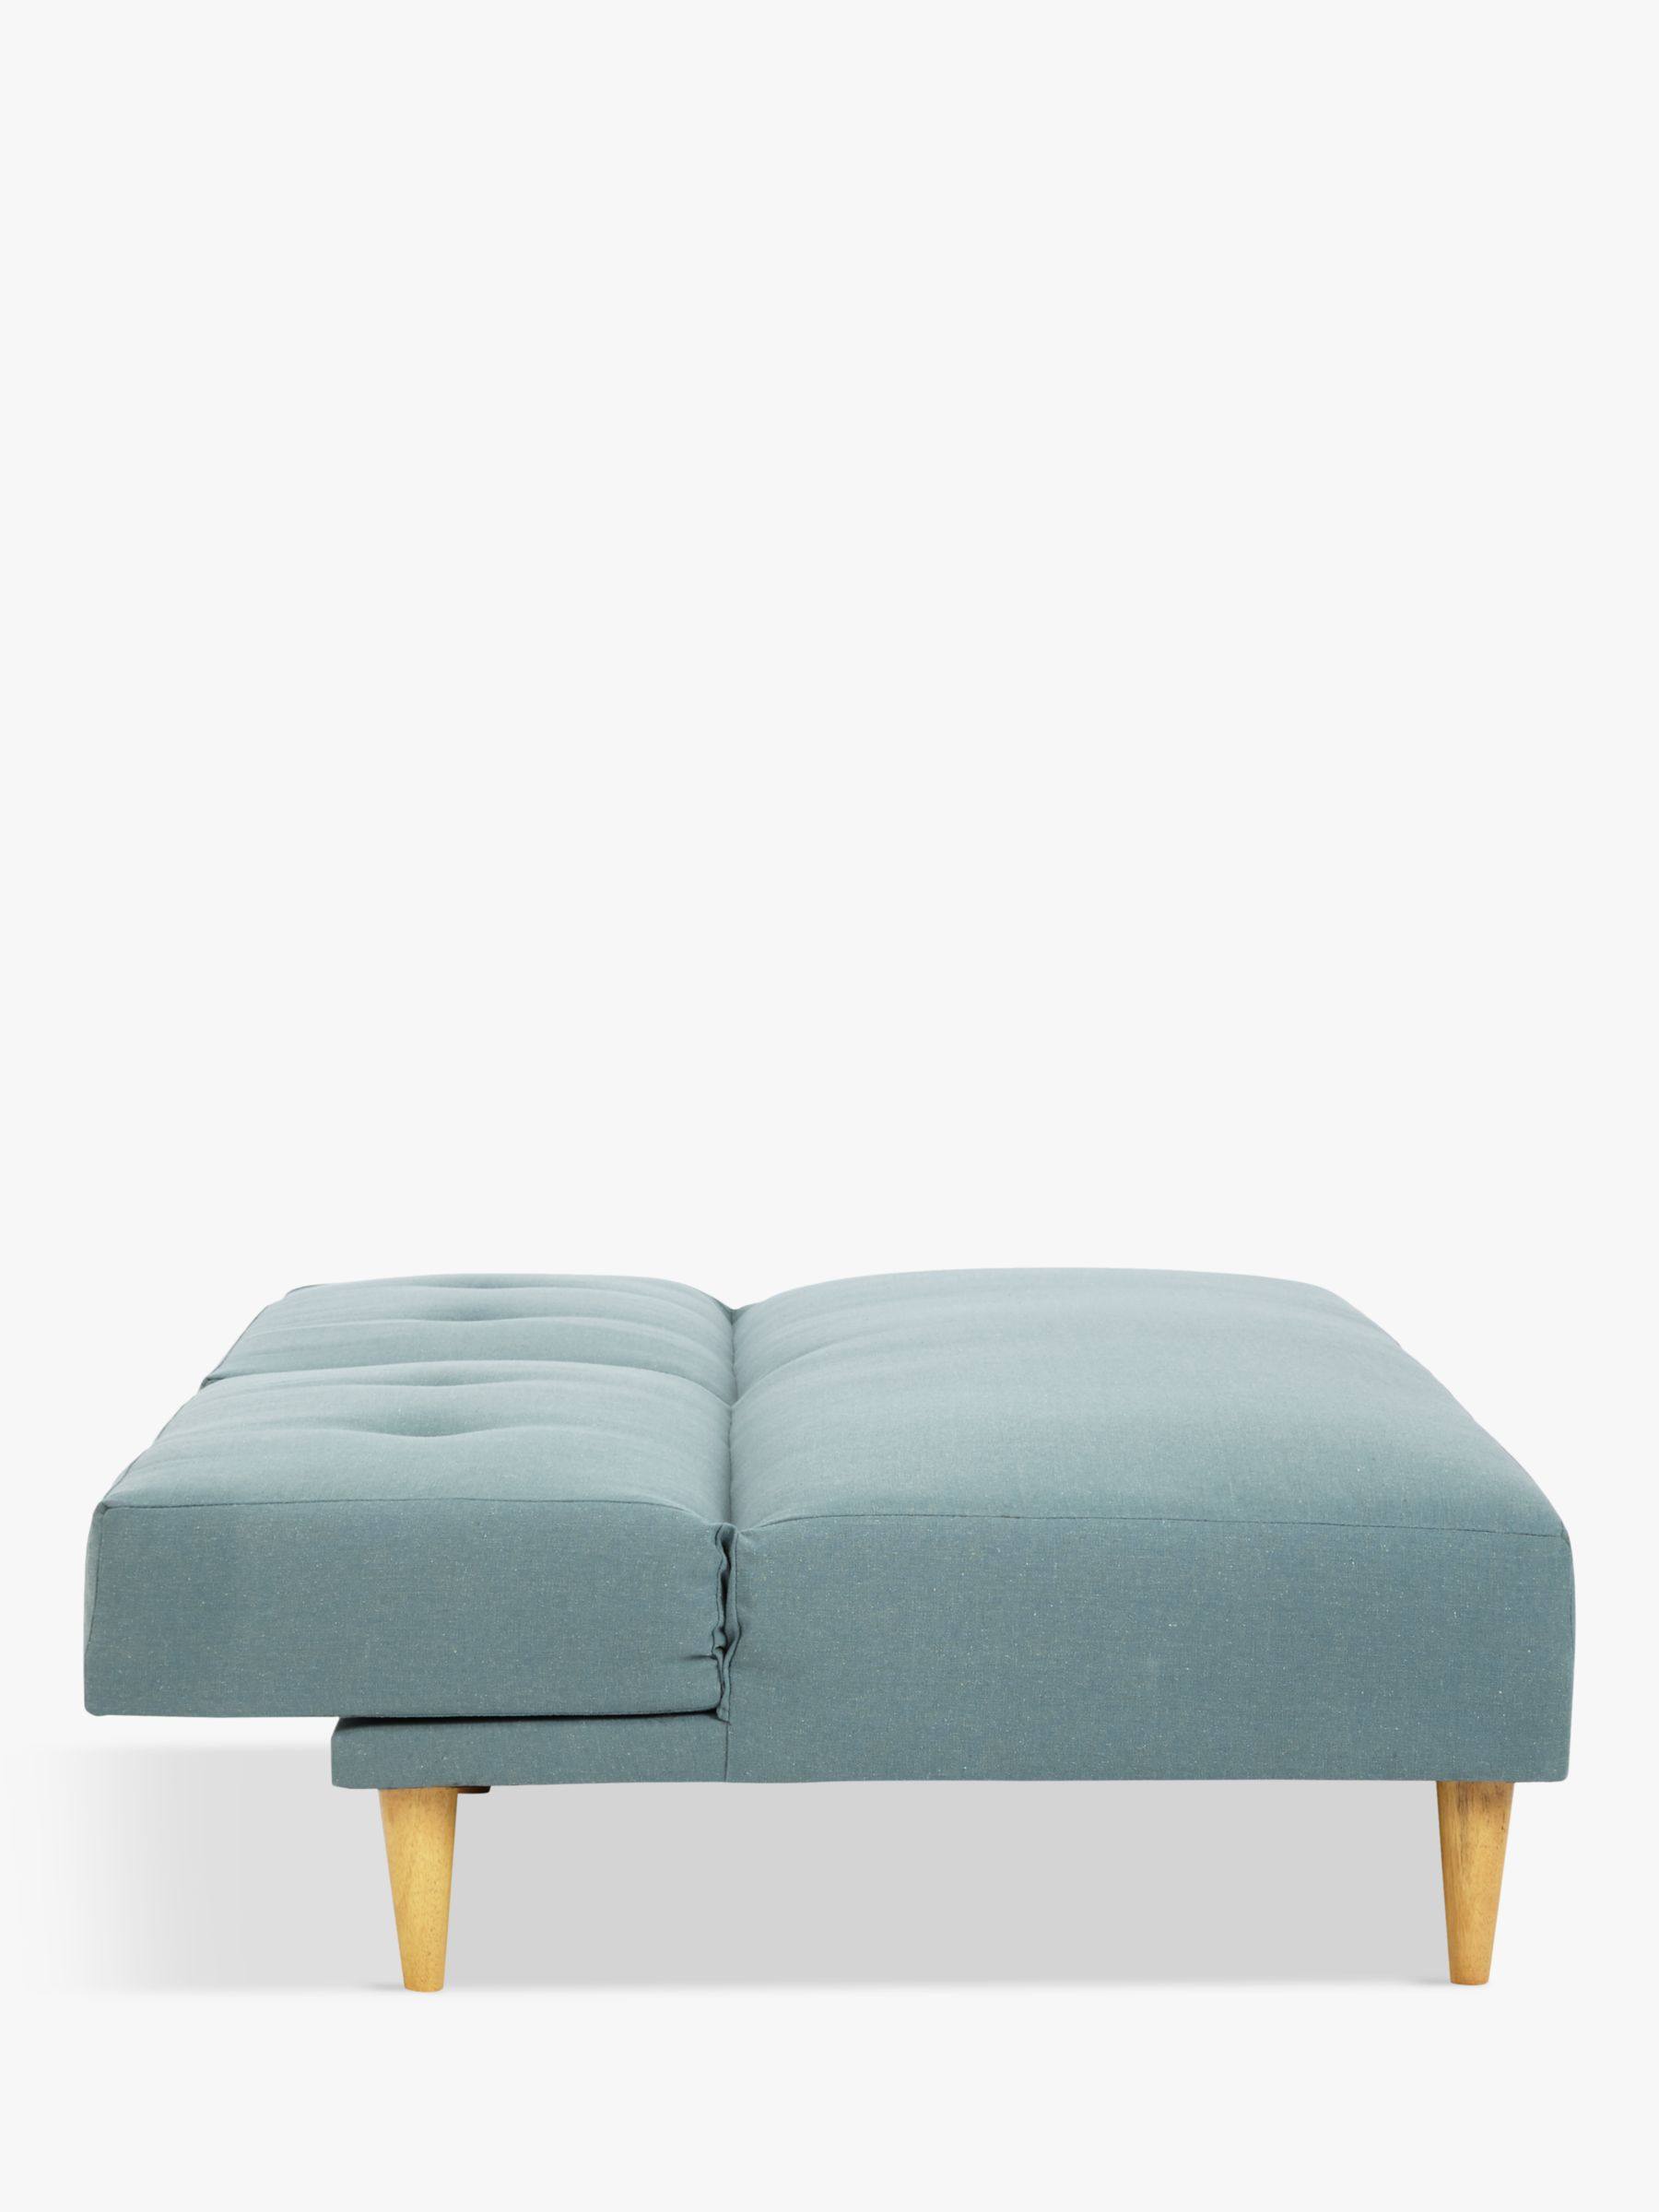 sofa foam online corner sofas for under 200 john lewis the basics clapton bed with mattress